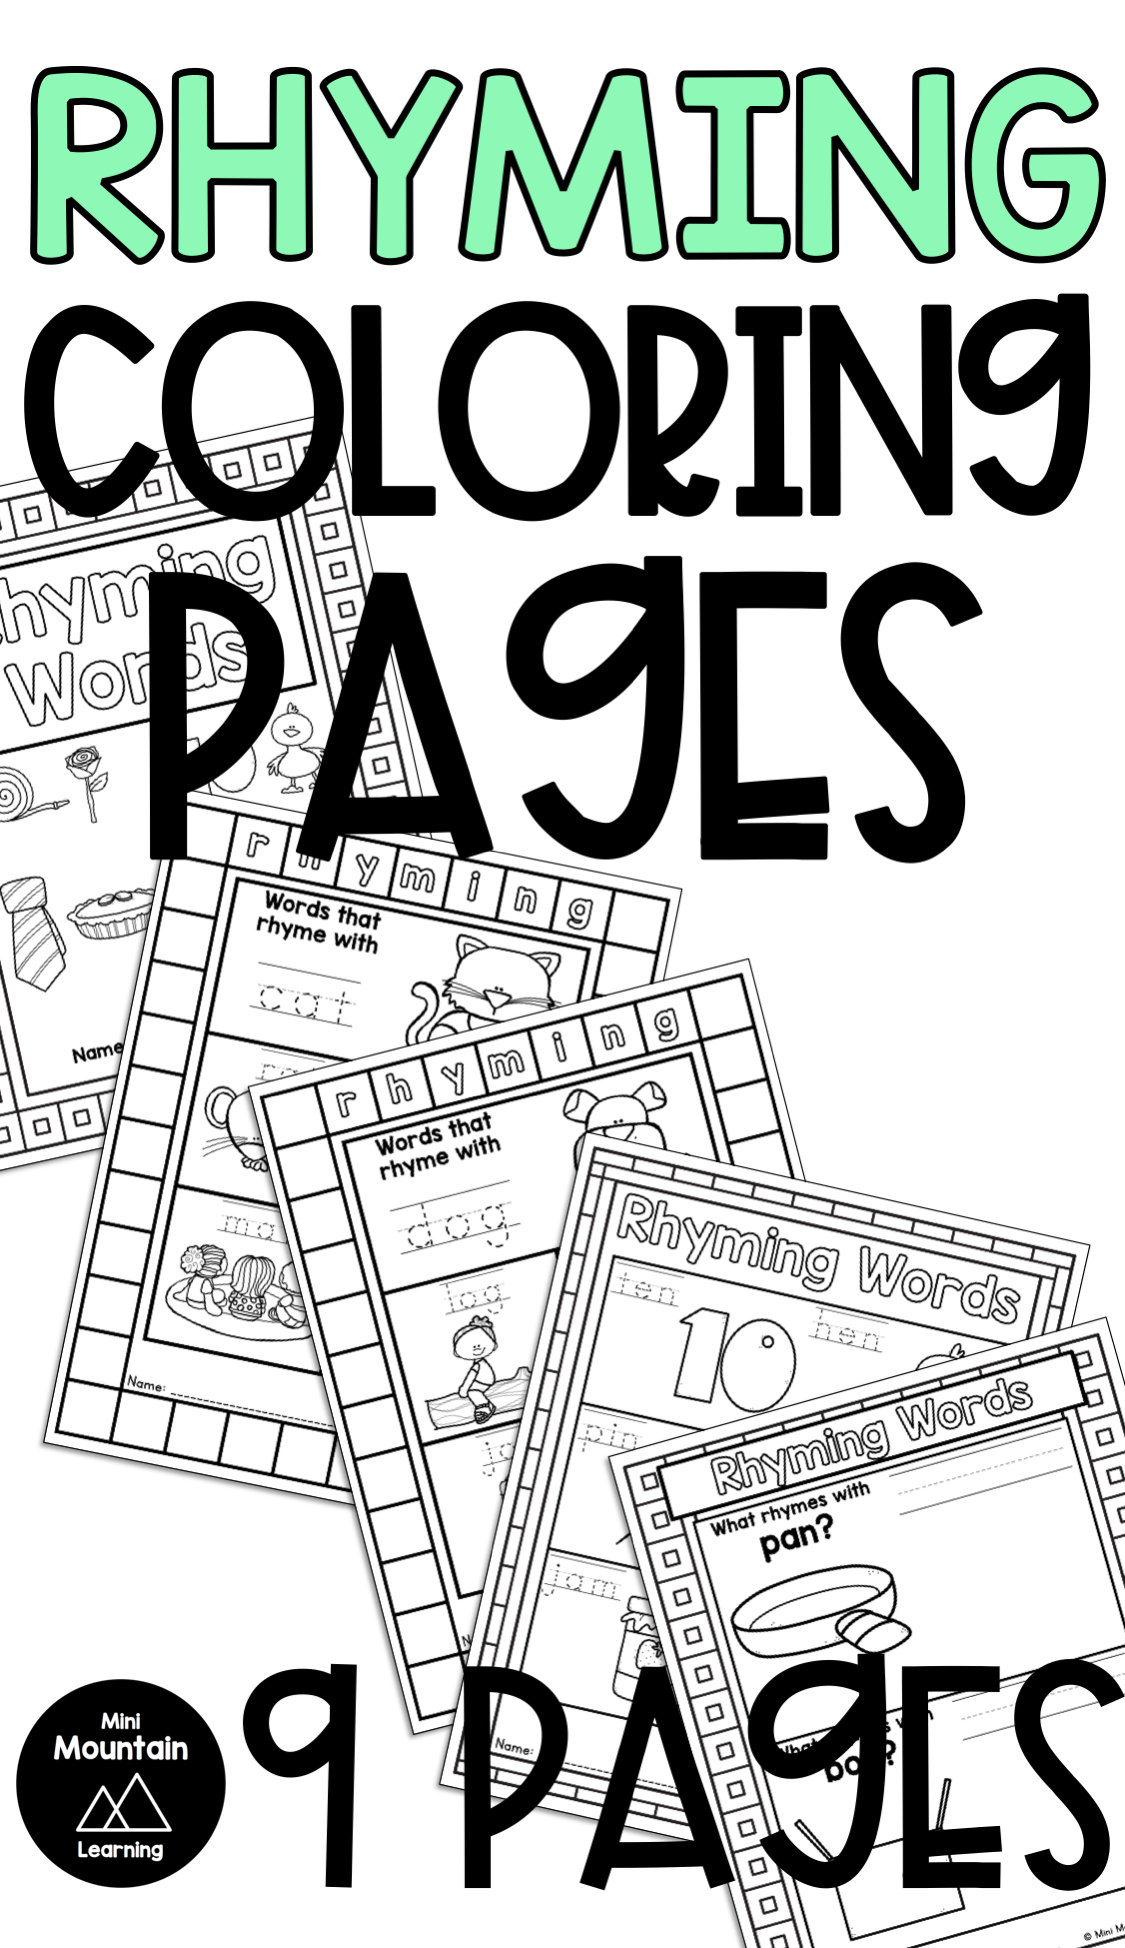 Rhyming Coloring Pages In 2021 Mothers Day Coloring Pages Fathers Day Coloring Page New Year Coloring Pages [ 1948 x 1125 Pixel ]